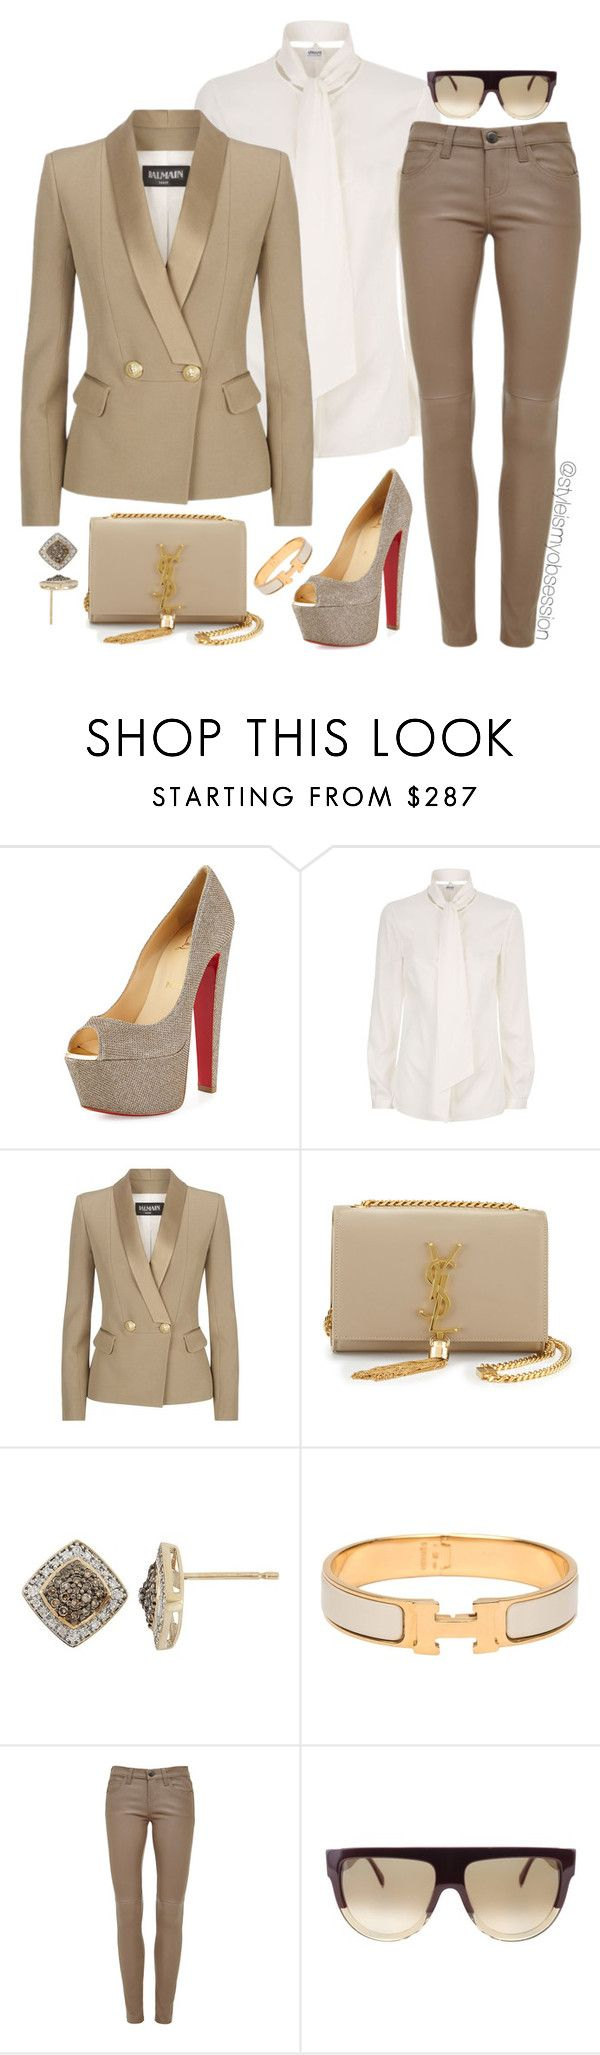 """""""Untitled #1759"""" by dnicoleg ❤ liked on Polyvore featuring Christian Louboutin, Armani Collezioni, Balmain, Yves Saint Laurent, YellOra, Hermès, Current/Elliott and CÉLINE"""